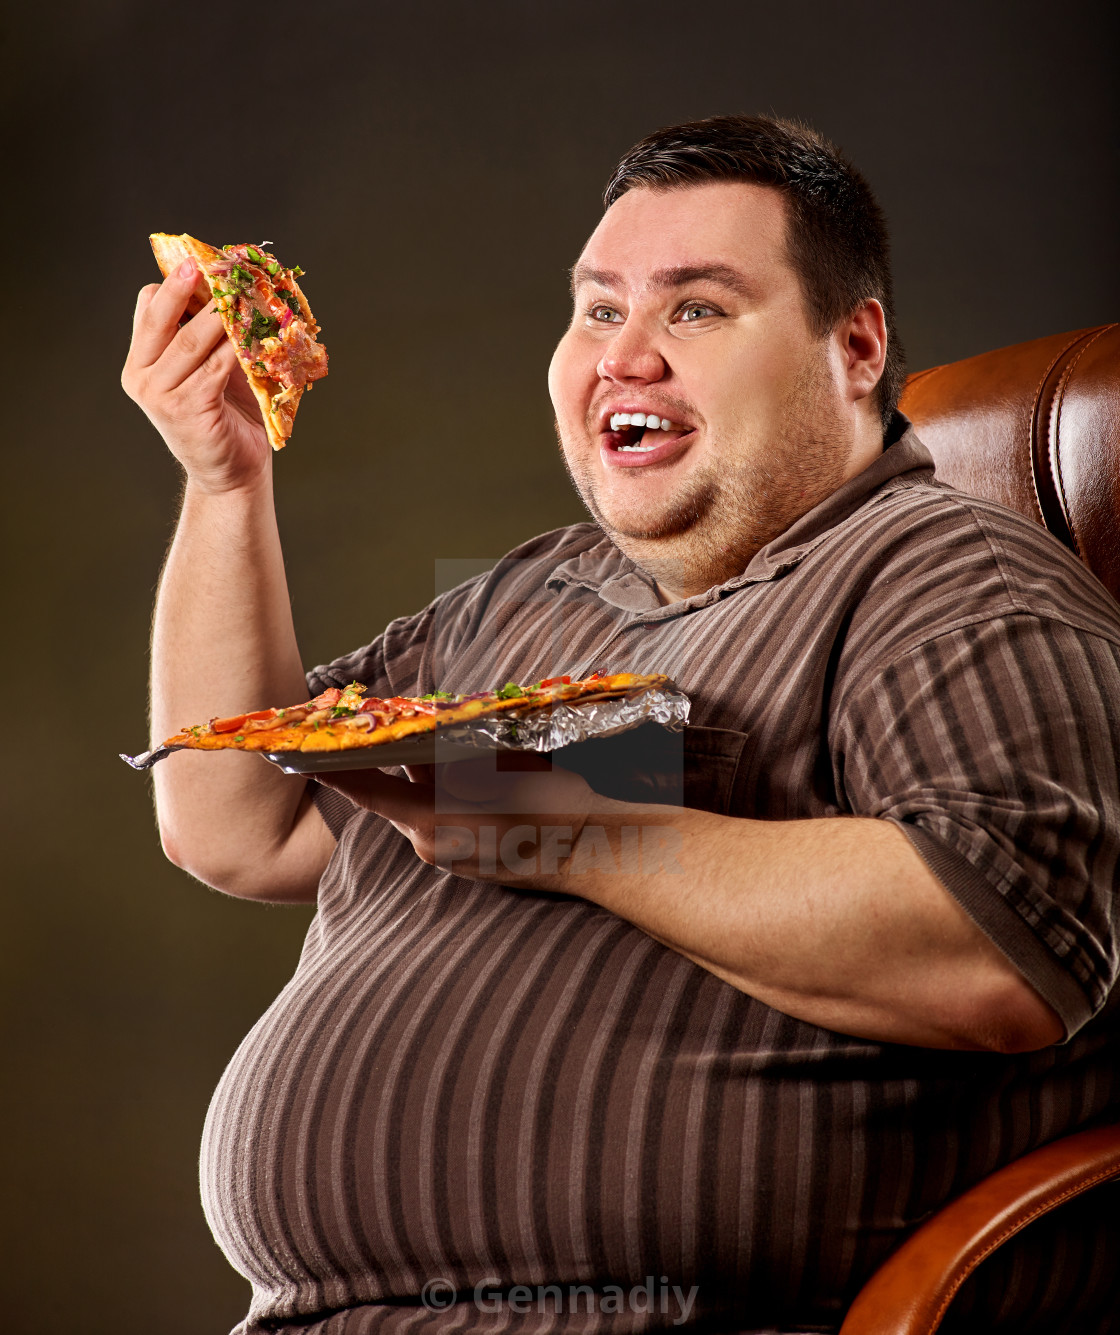 Fat Person Eating Pizza Photos